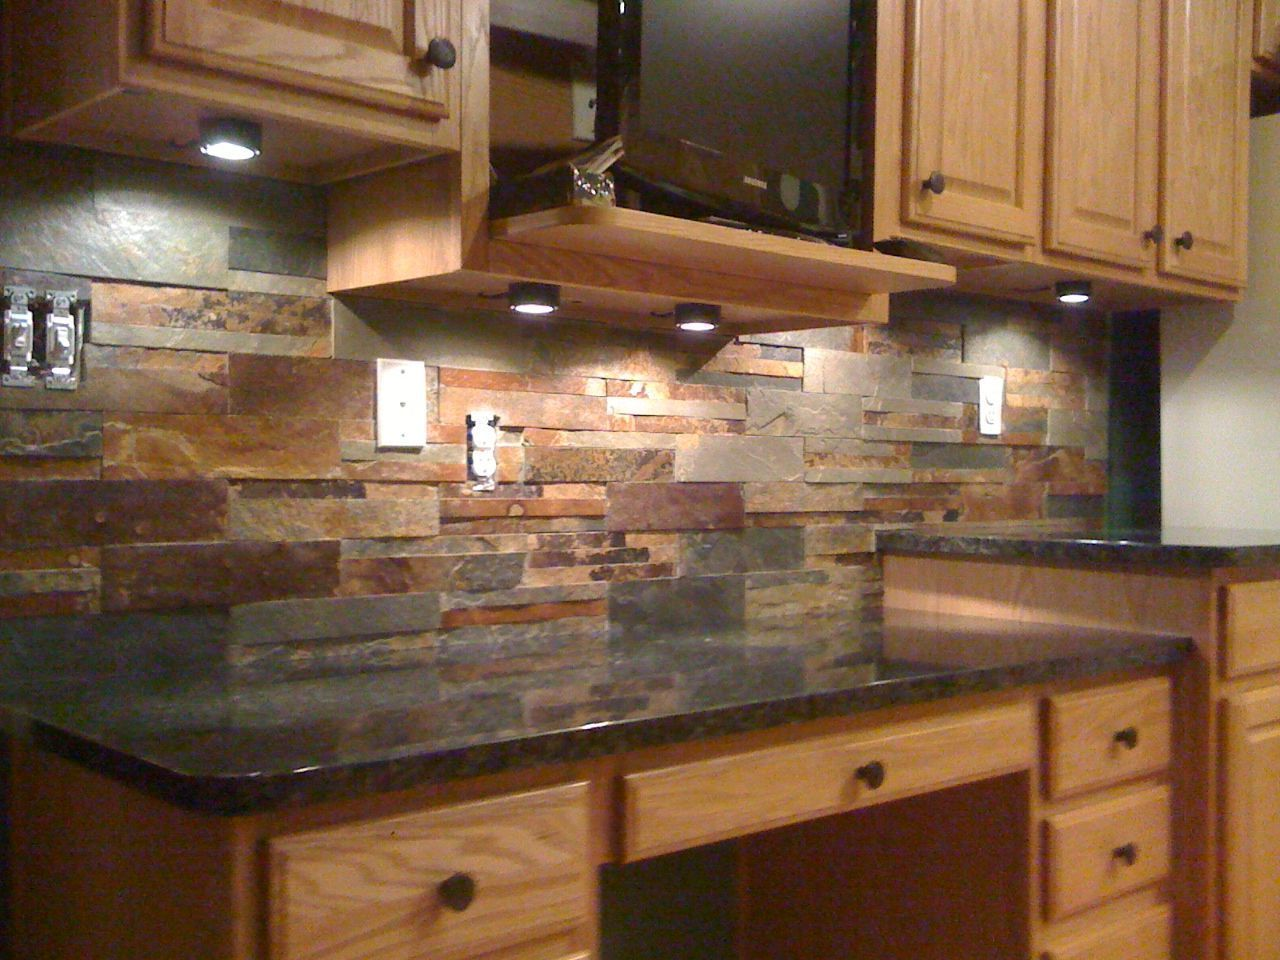 Kitchen Tiles Granite 20 43 Kitchen Flooring Ideas Pros Cons And Cost Of Each